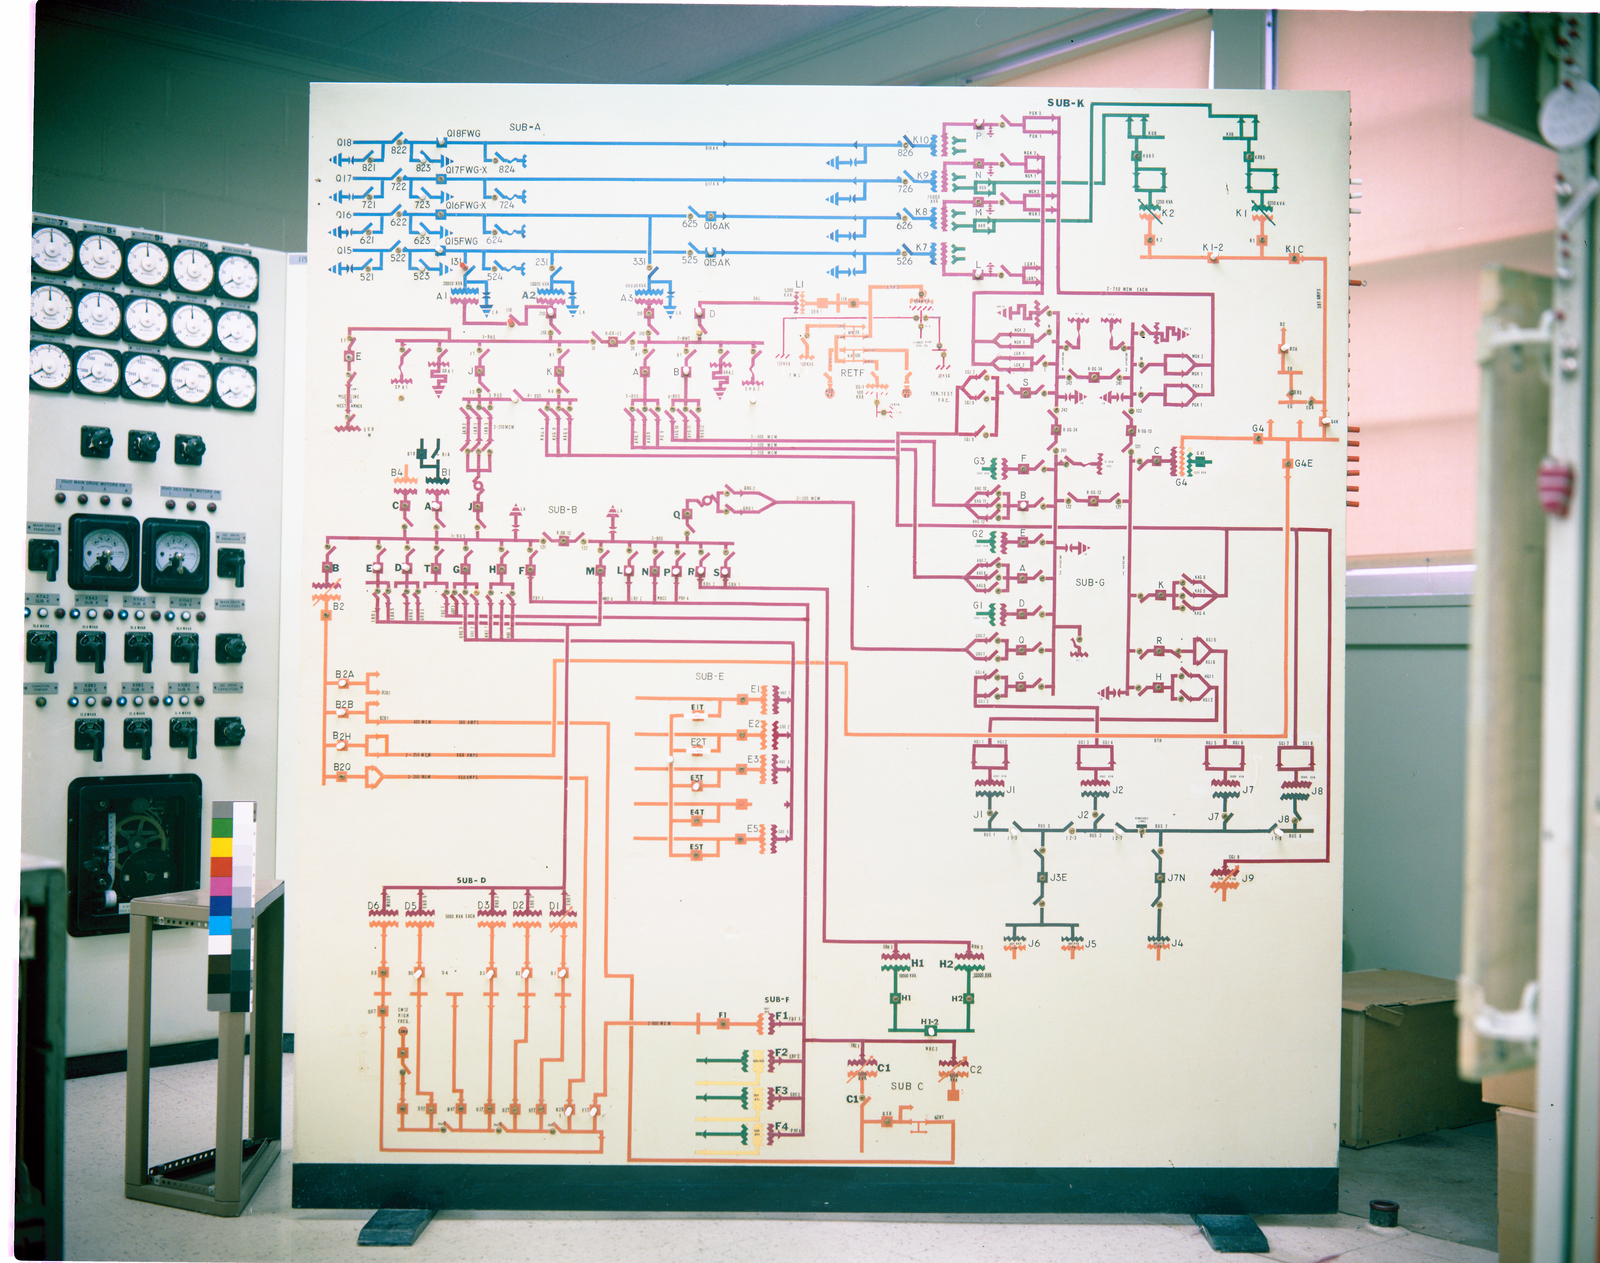 hight resolution of circuit diagram boards in electrical distribution office